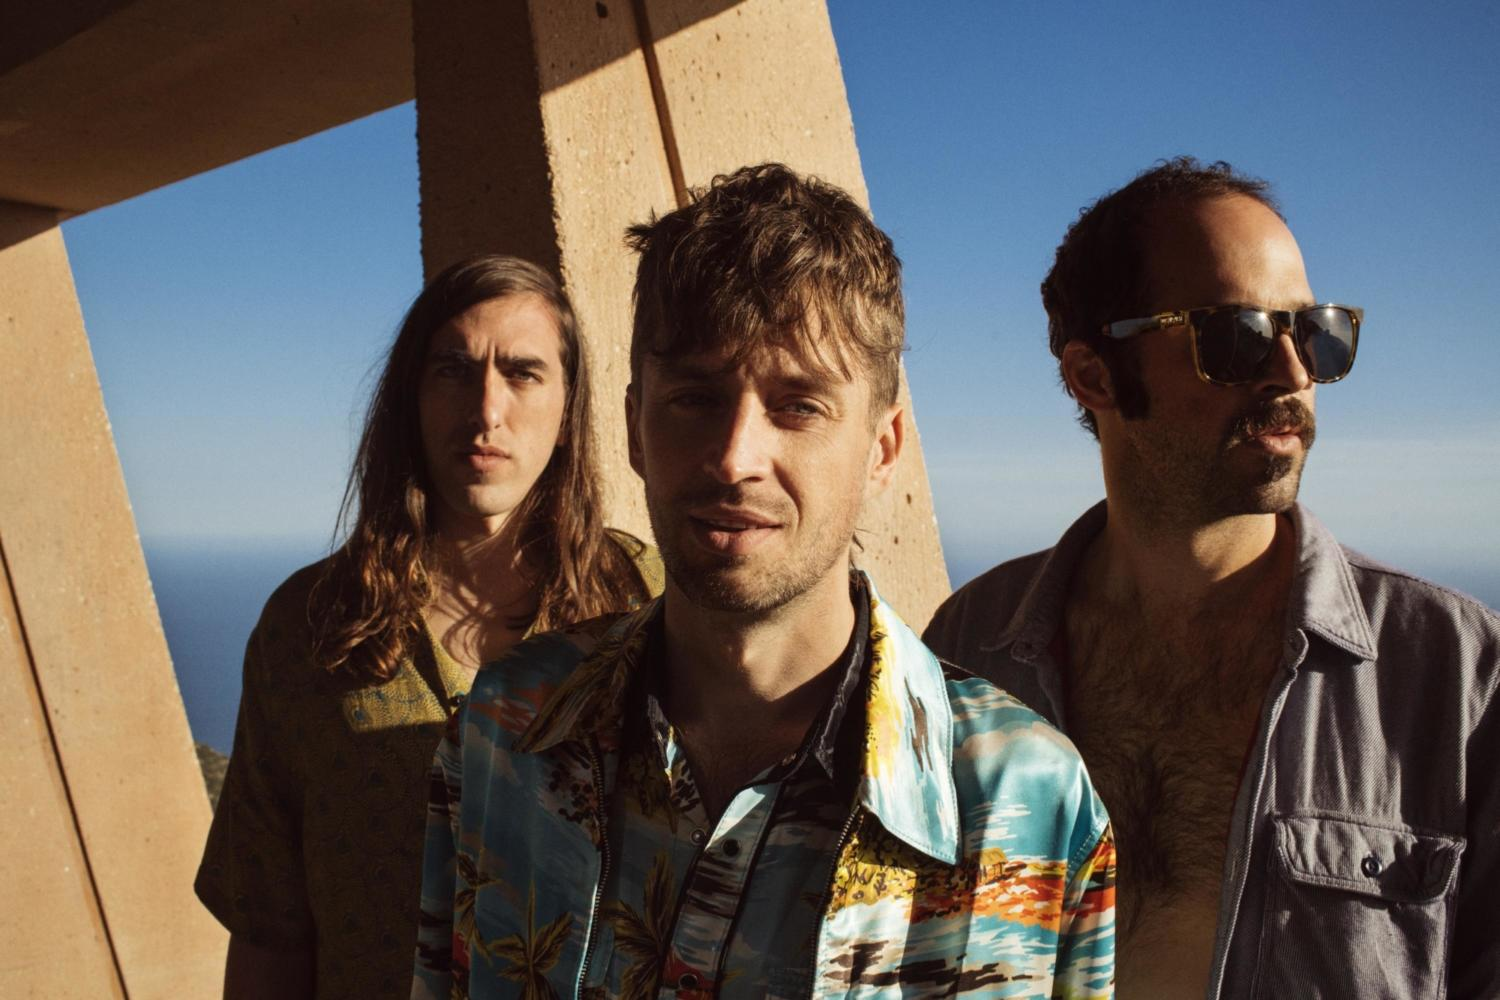 Crystal Fighters share new 'Hypnotic Sun' EP